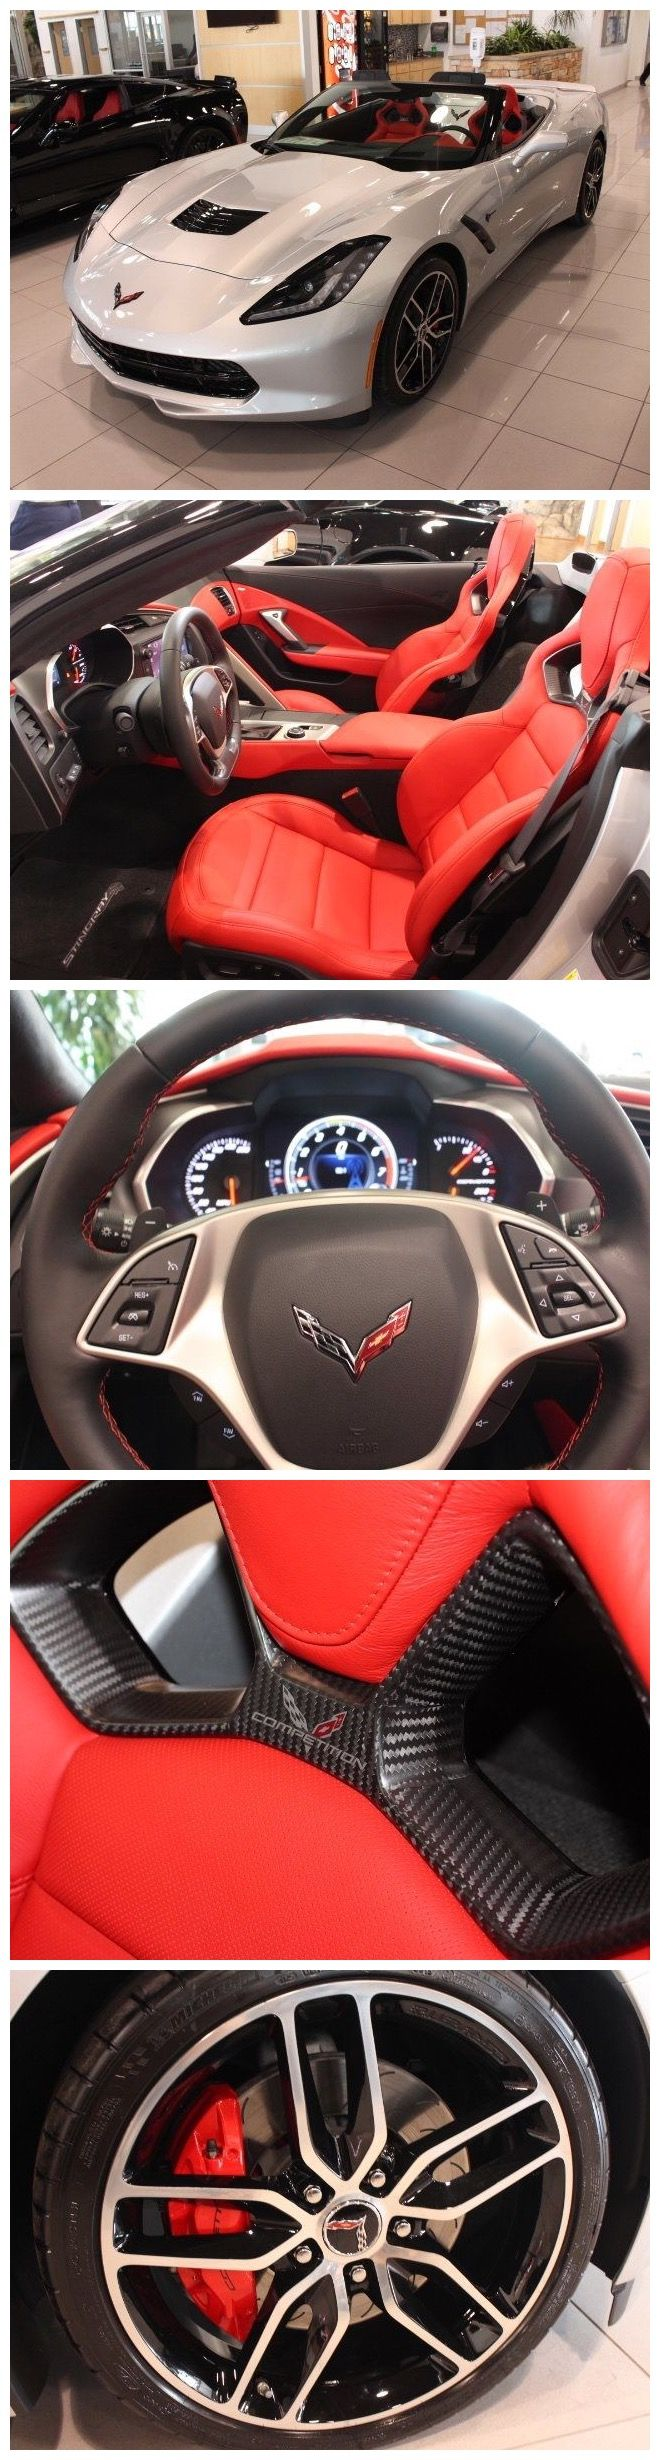 2016 Chevrolet Corvette Stingray Z51 - 2D Convertible, 6.2L V8, RWD, Blade Silver Metallic, Adrenaline Red w/Leather Seat Surfaces w/Sueded Microfiber Inserts, and Navigation System.